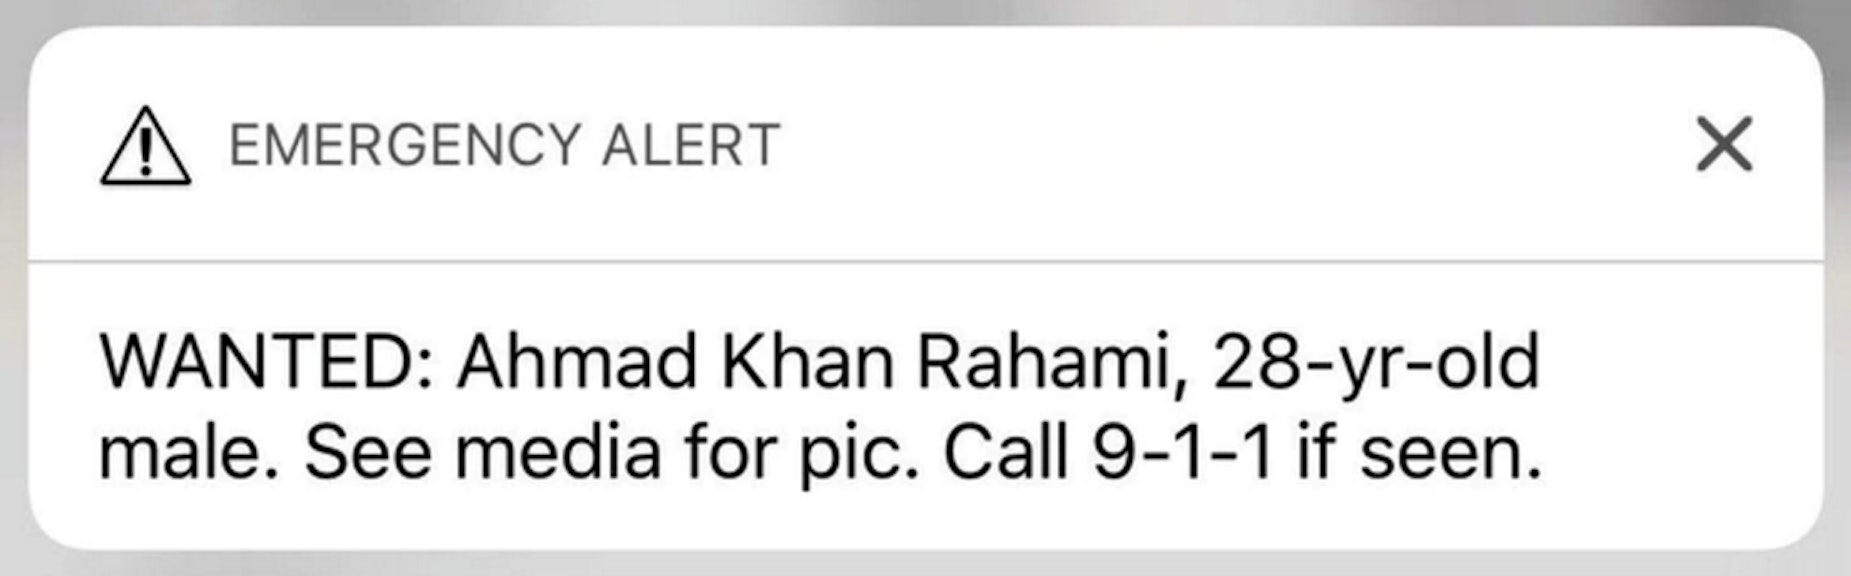 "The alert sent out to New Yorkers with iPhones at 8 a.m. on Monday, September 19 warned them to look out for Ahmad Khan Rahami, and to ""see media for pic."""